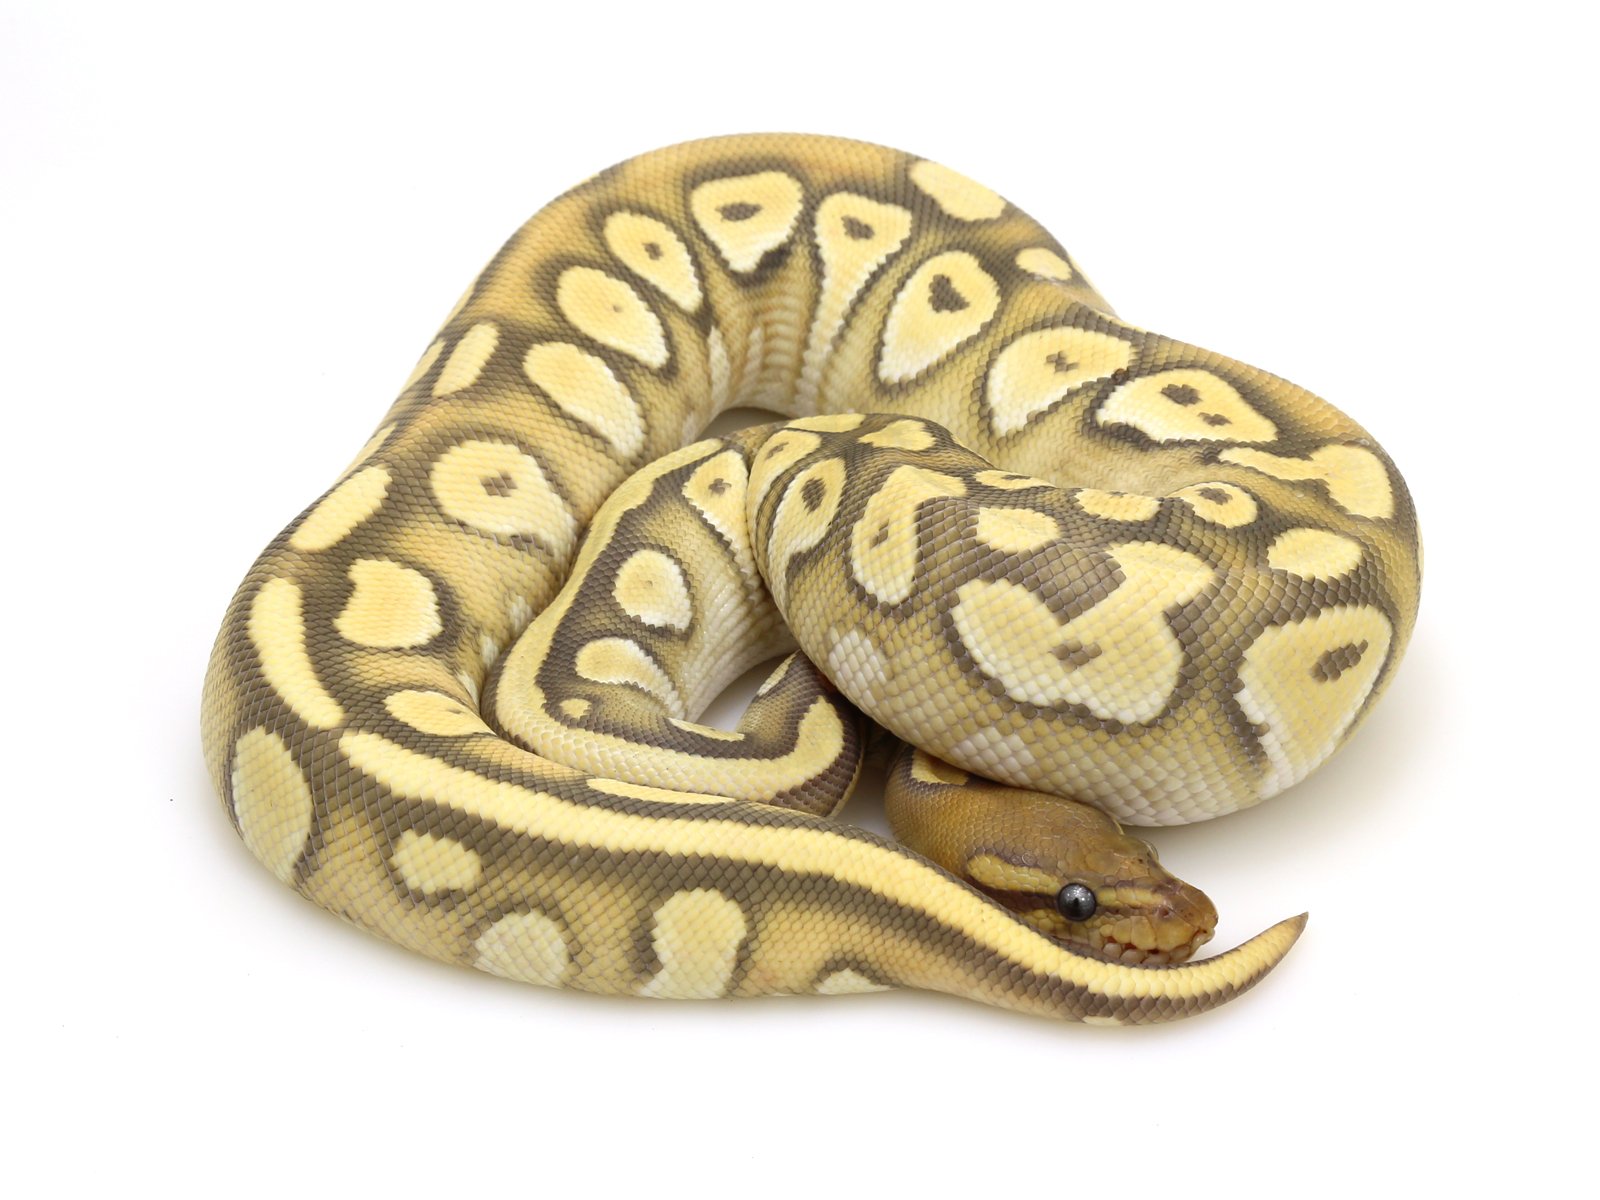 Ball Python clipart burmese python Ghost Markus Ball Orange Always